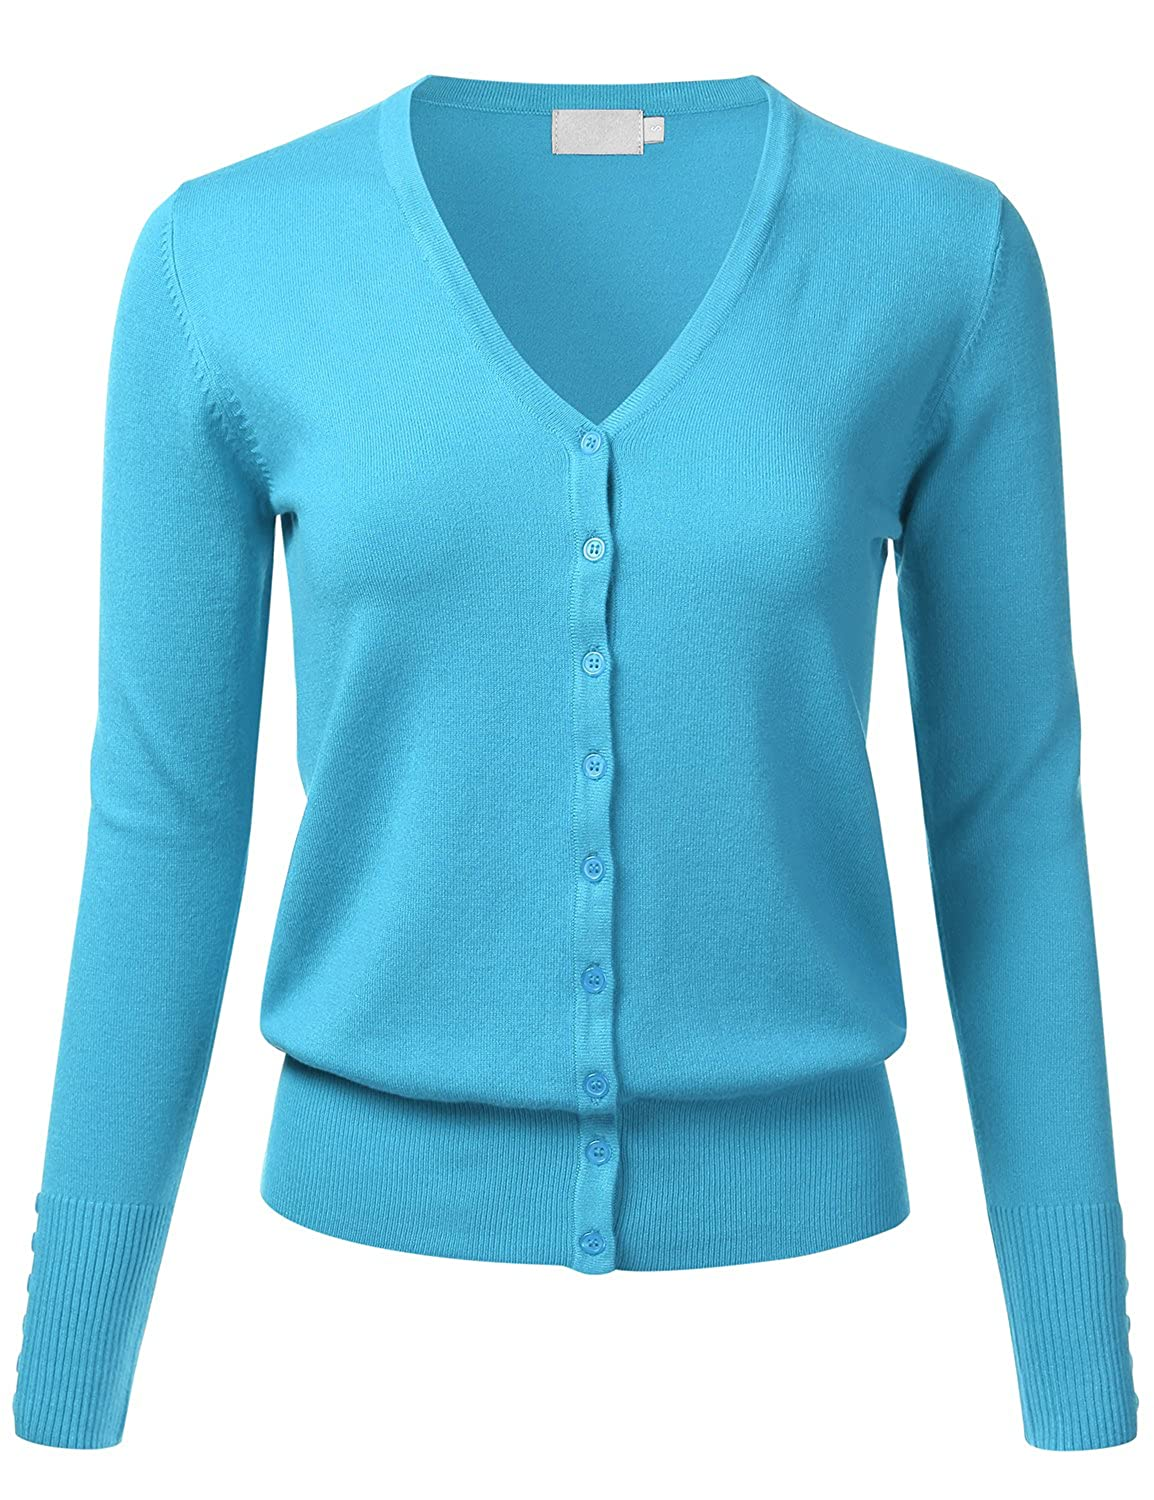 Domic Women Button Down Cardigan V Neck Long Sleeve Soft Knit ...